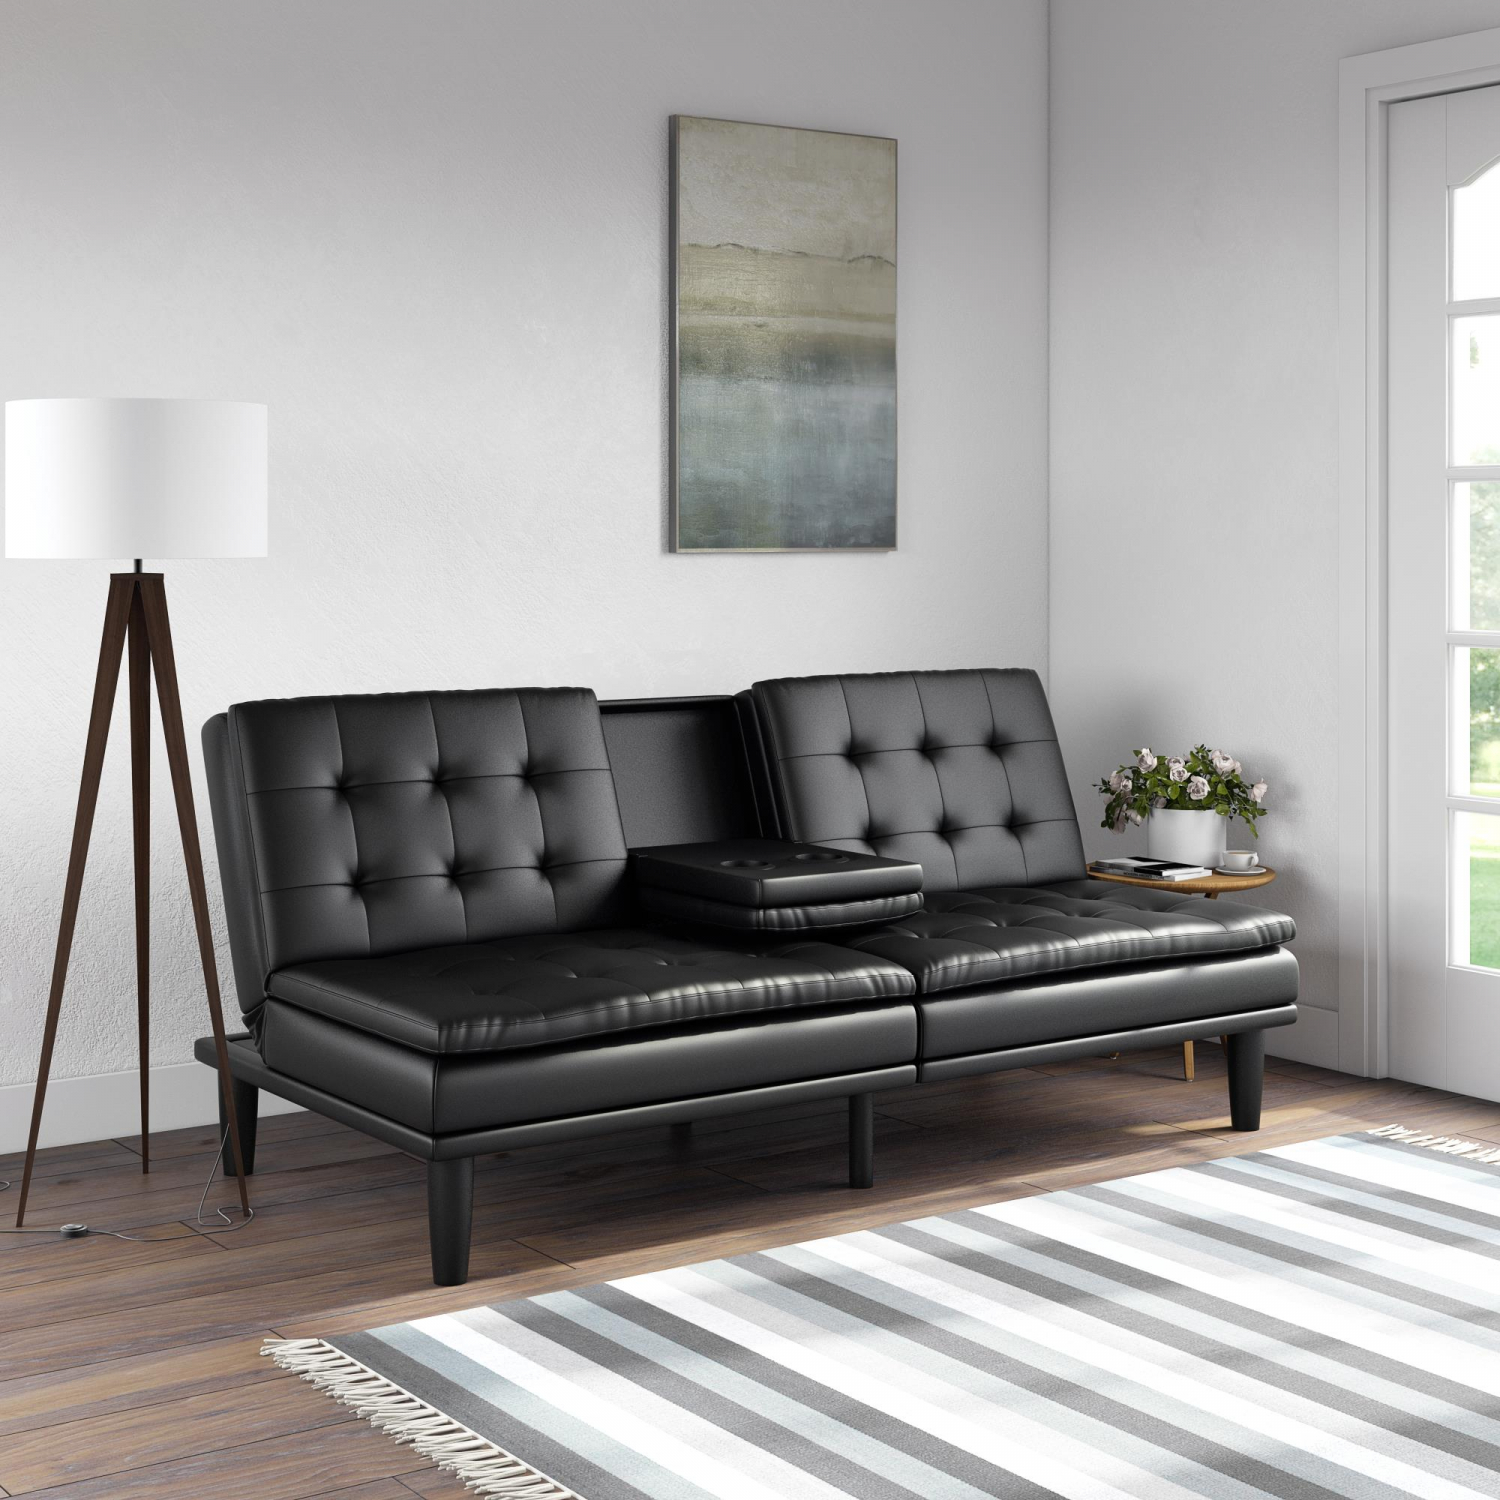 Swell Details About Futon Sofa Bed Memory Foam Pillowtop W Cupholder Black Dark Brow Vanilla Couch Gmtry Best Dining Table And Chair Ideas Images Gmtryco